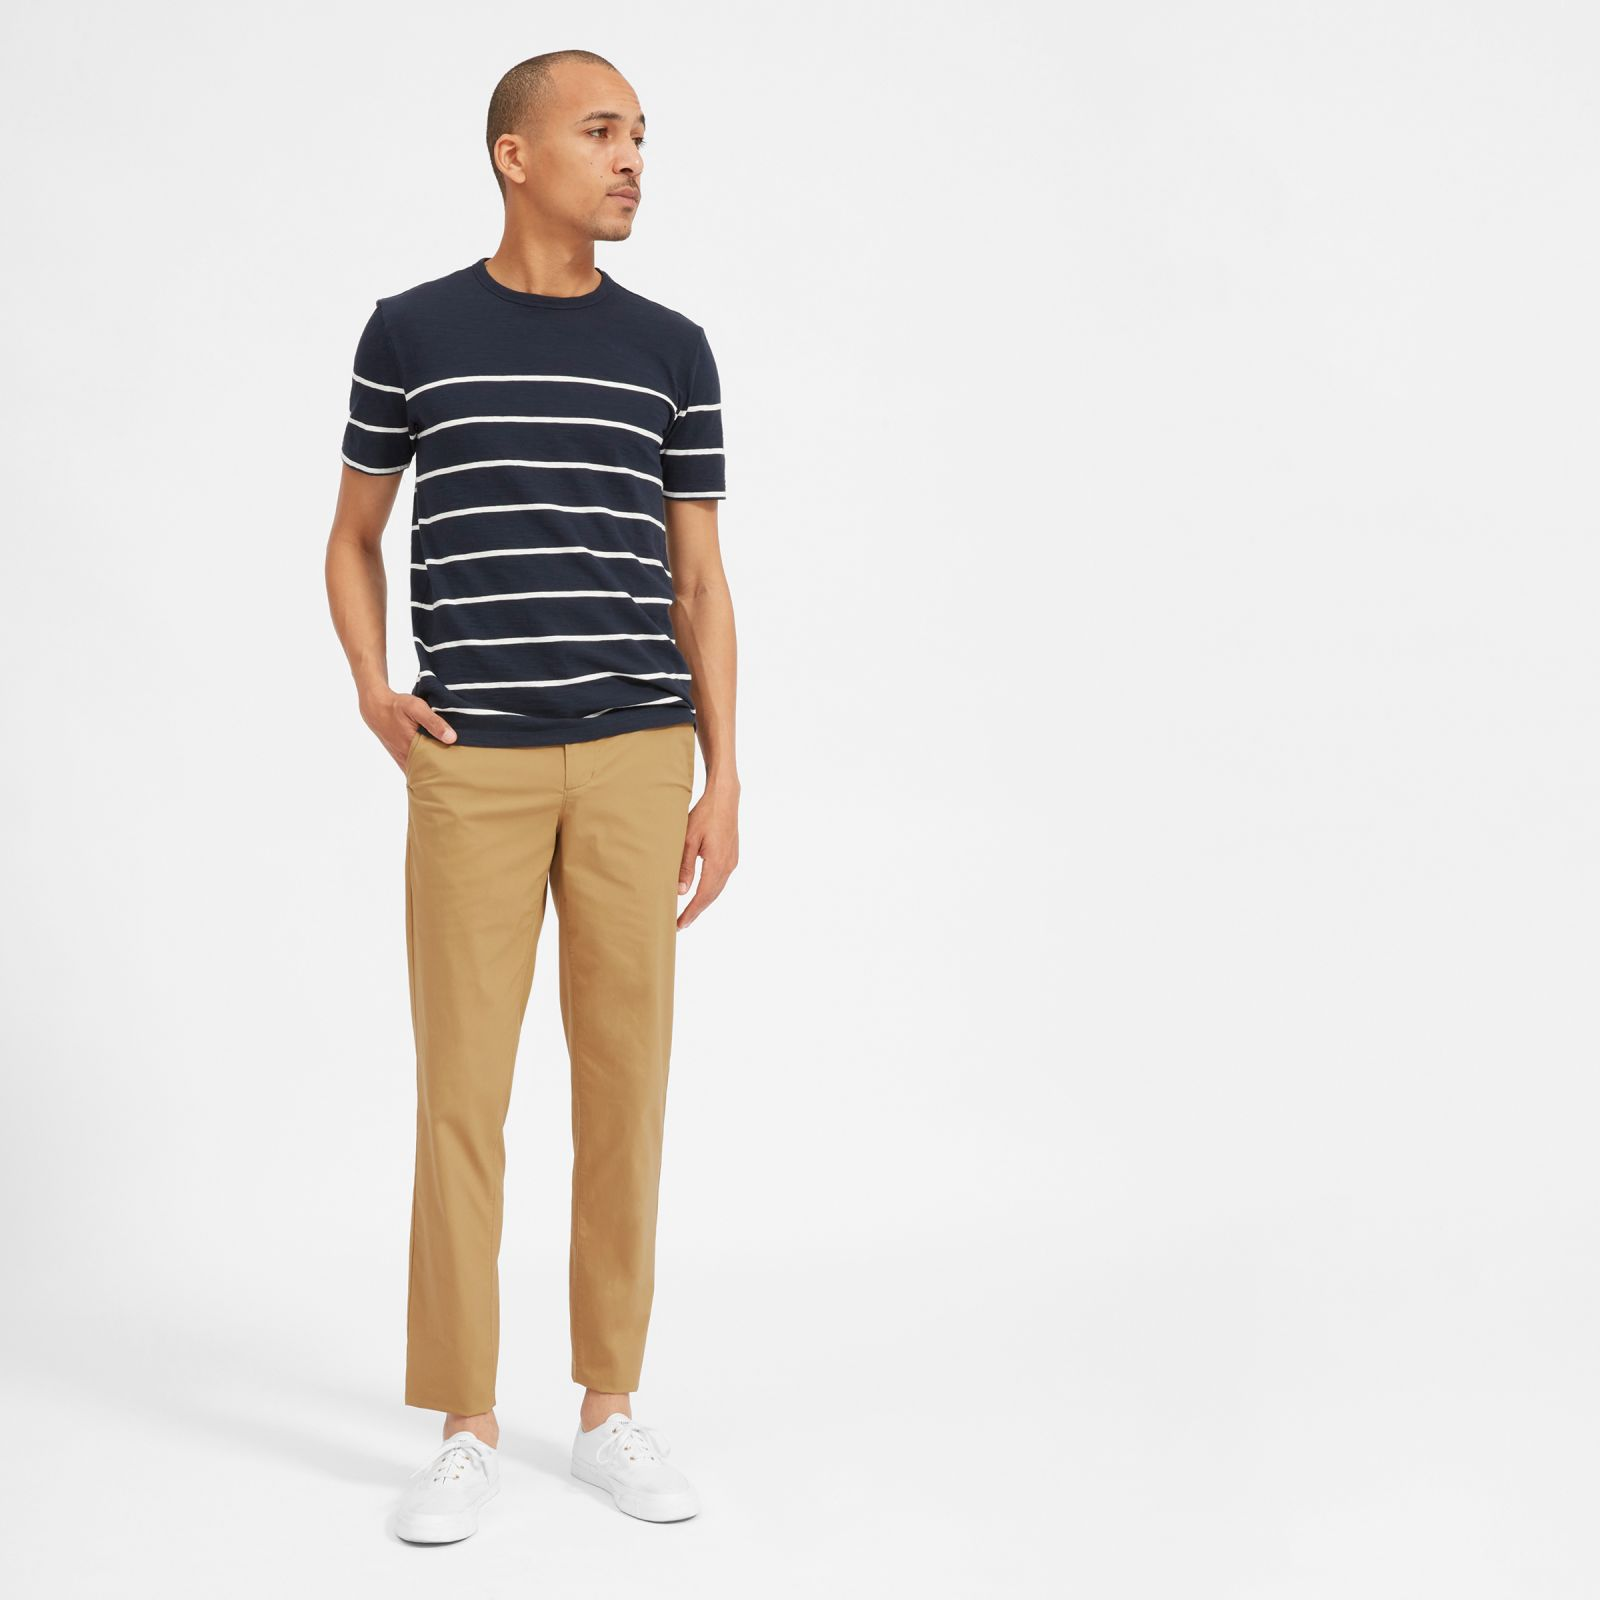 men's air chino by everlane in ochre, size 36x32